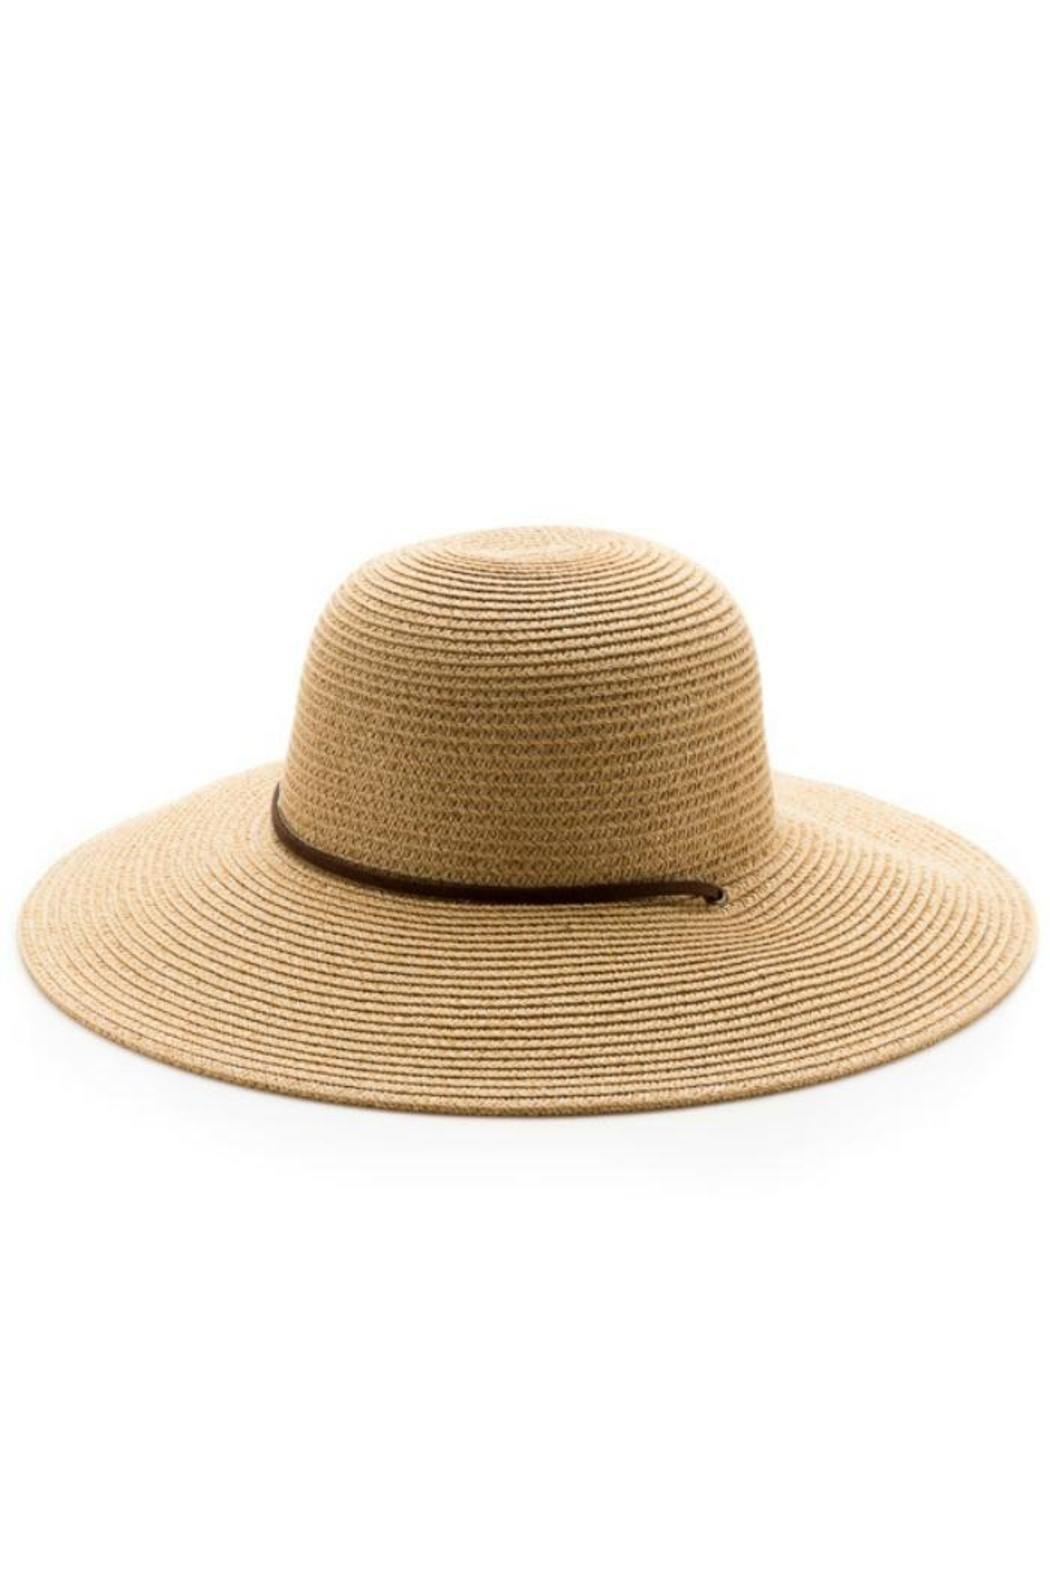 Yellow 108 Sun Hat from Wicker Park by Mulberry   Me — Shoptiques 2fca796b2b4